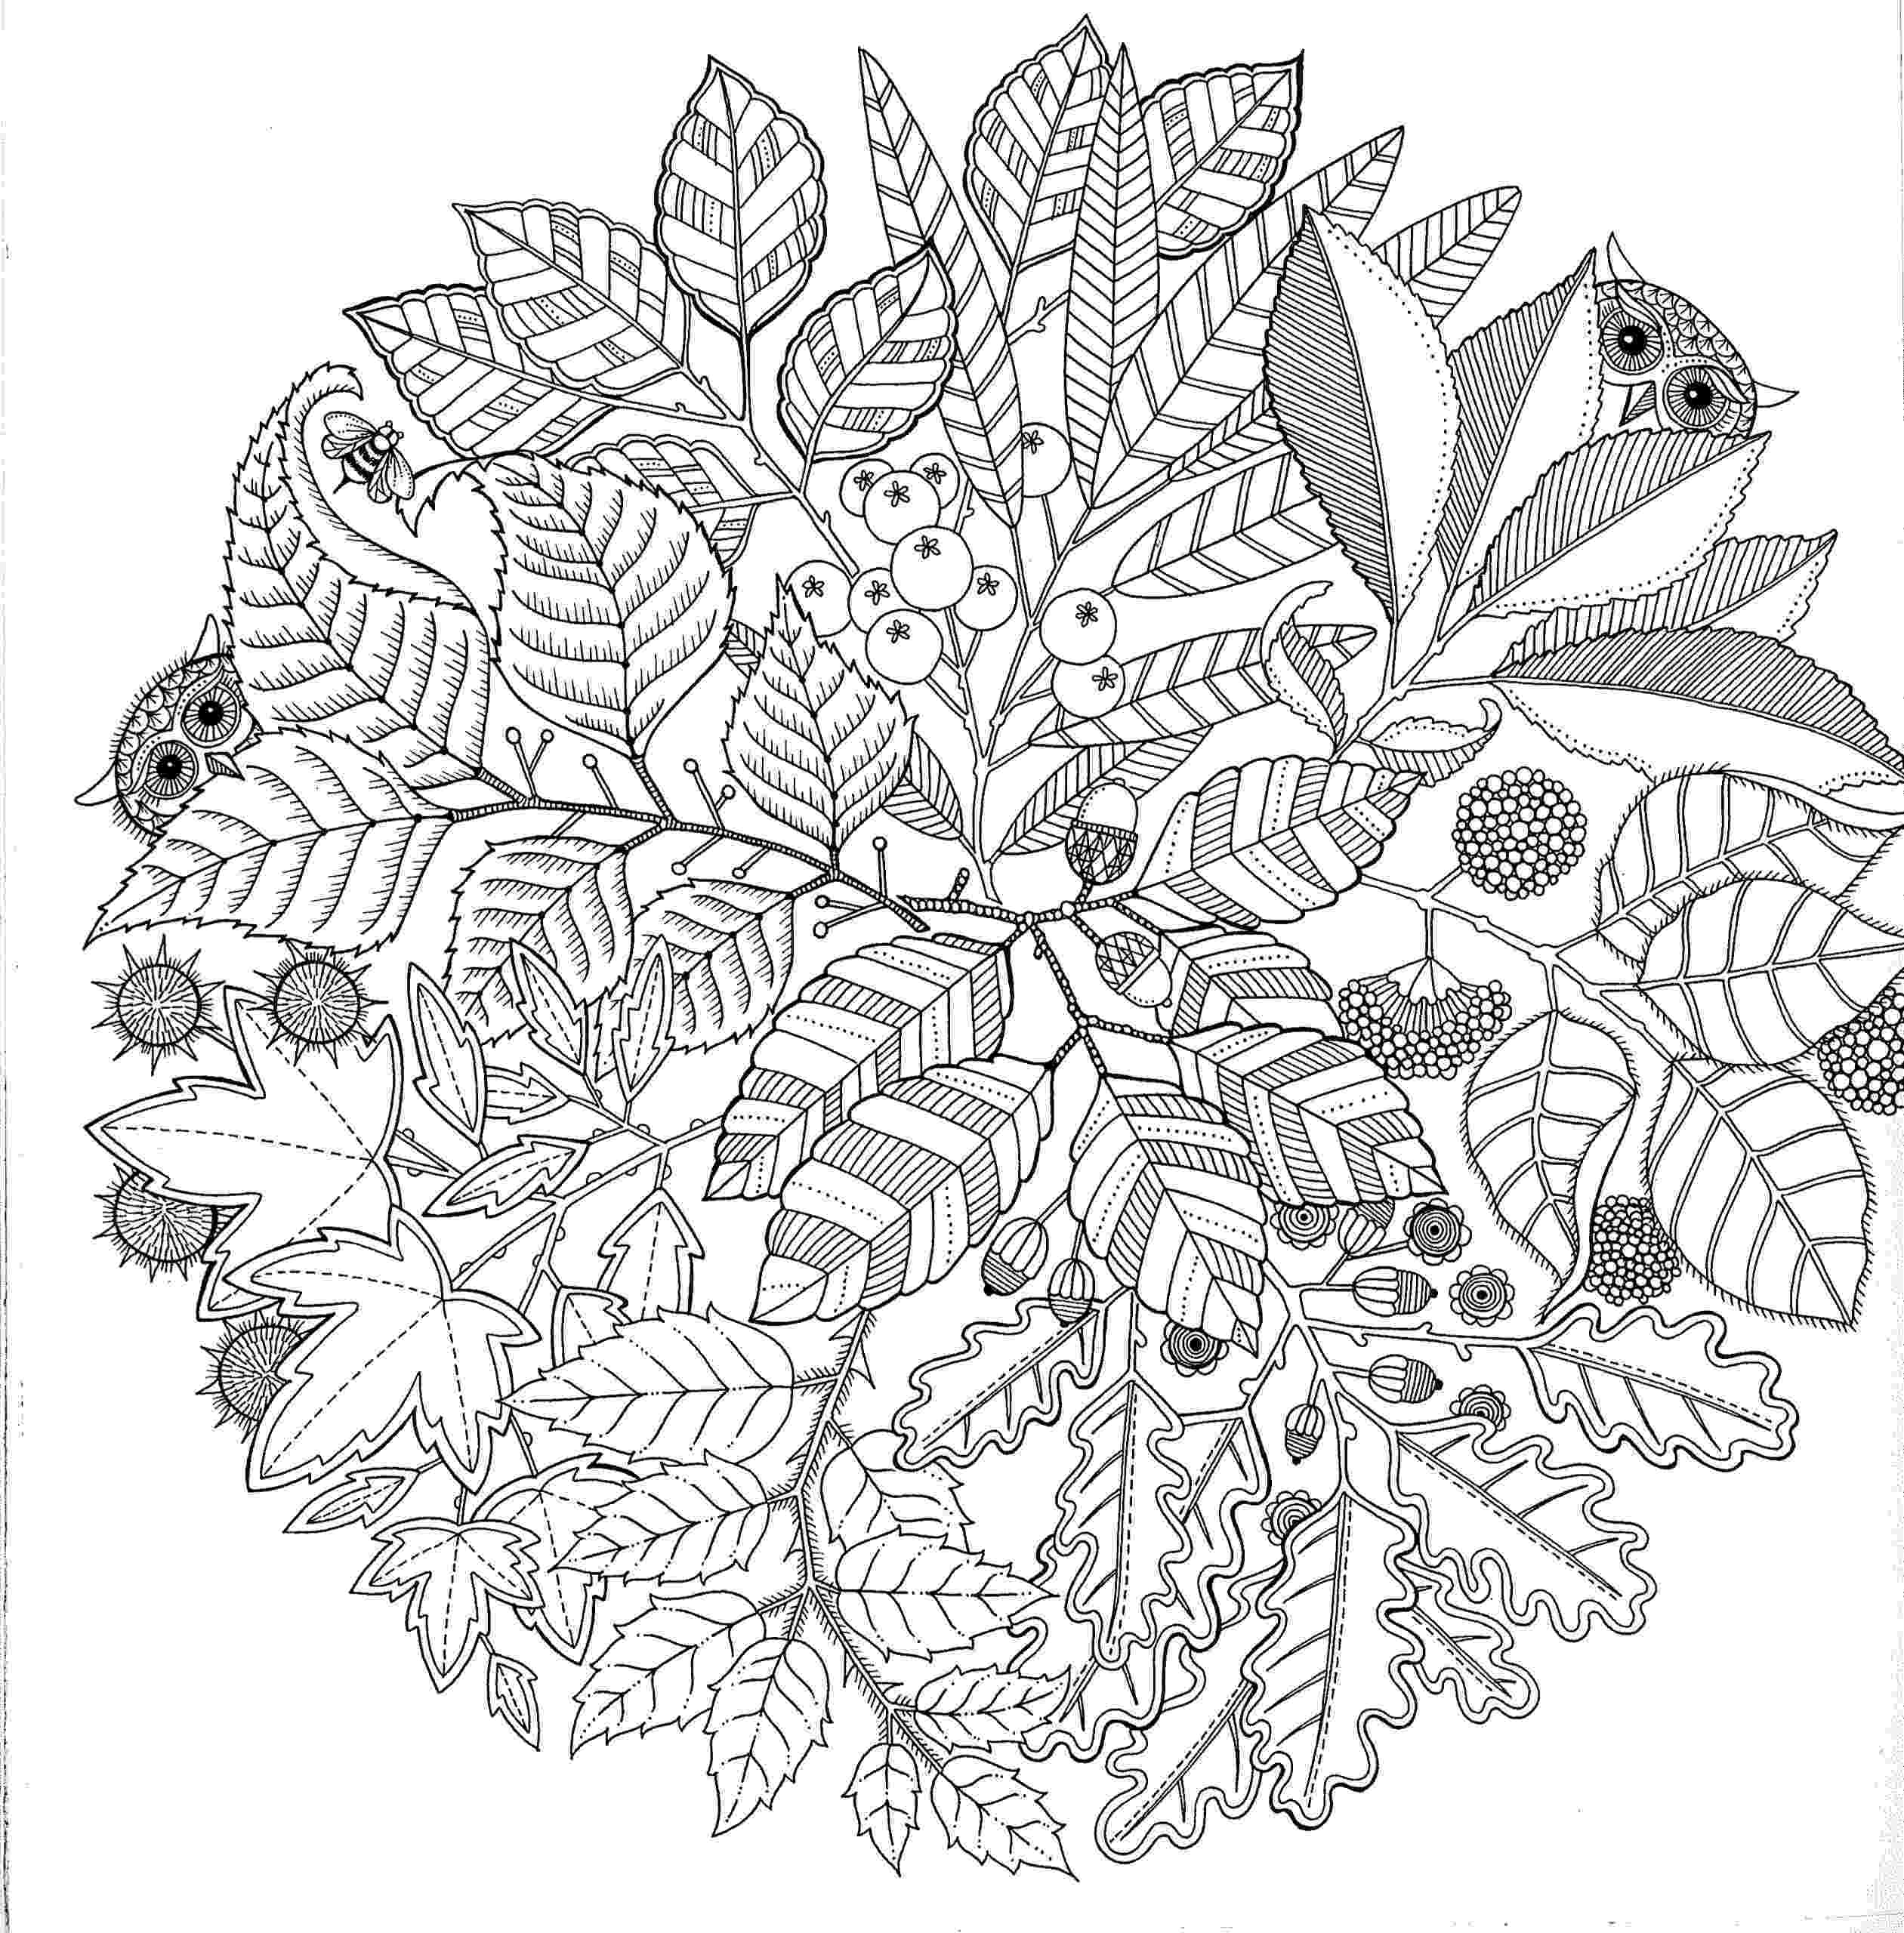 free colouring pages to print for adults free printable coloring pages for adults 12 more designs adults to for free colouring print pages